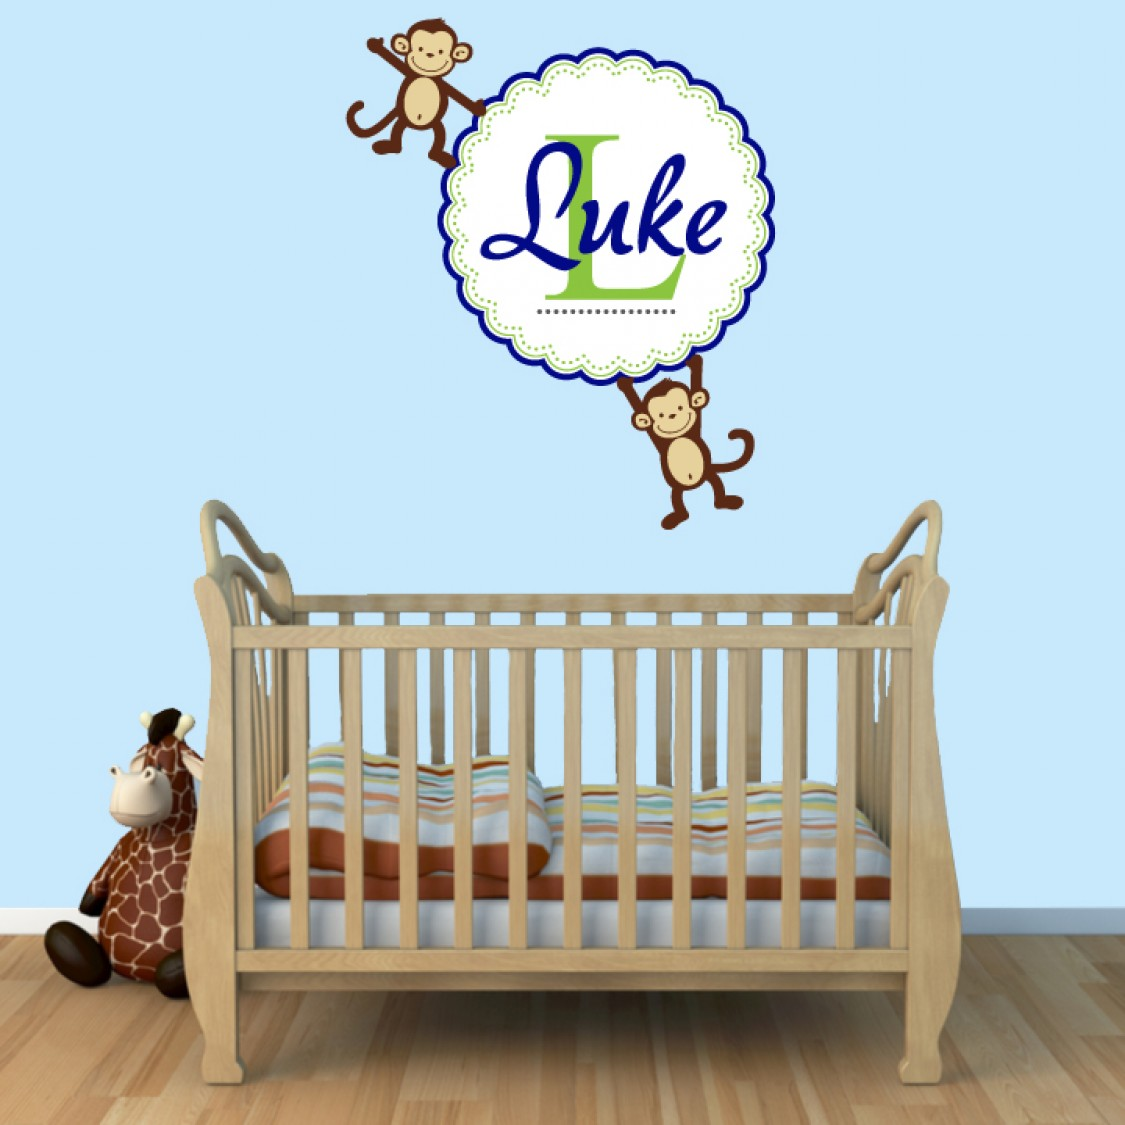 Custom Name Wall Decals With Monkeys Stickers For Boys Bedrooms